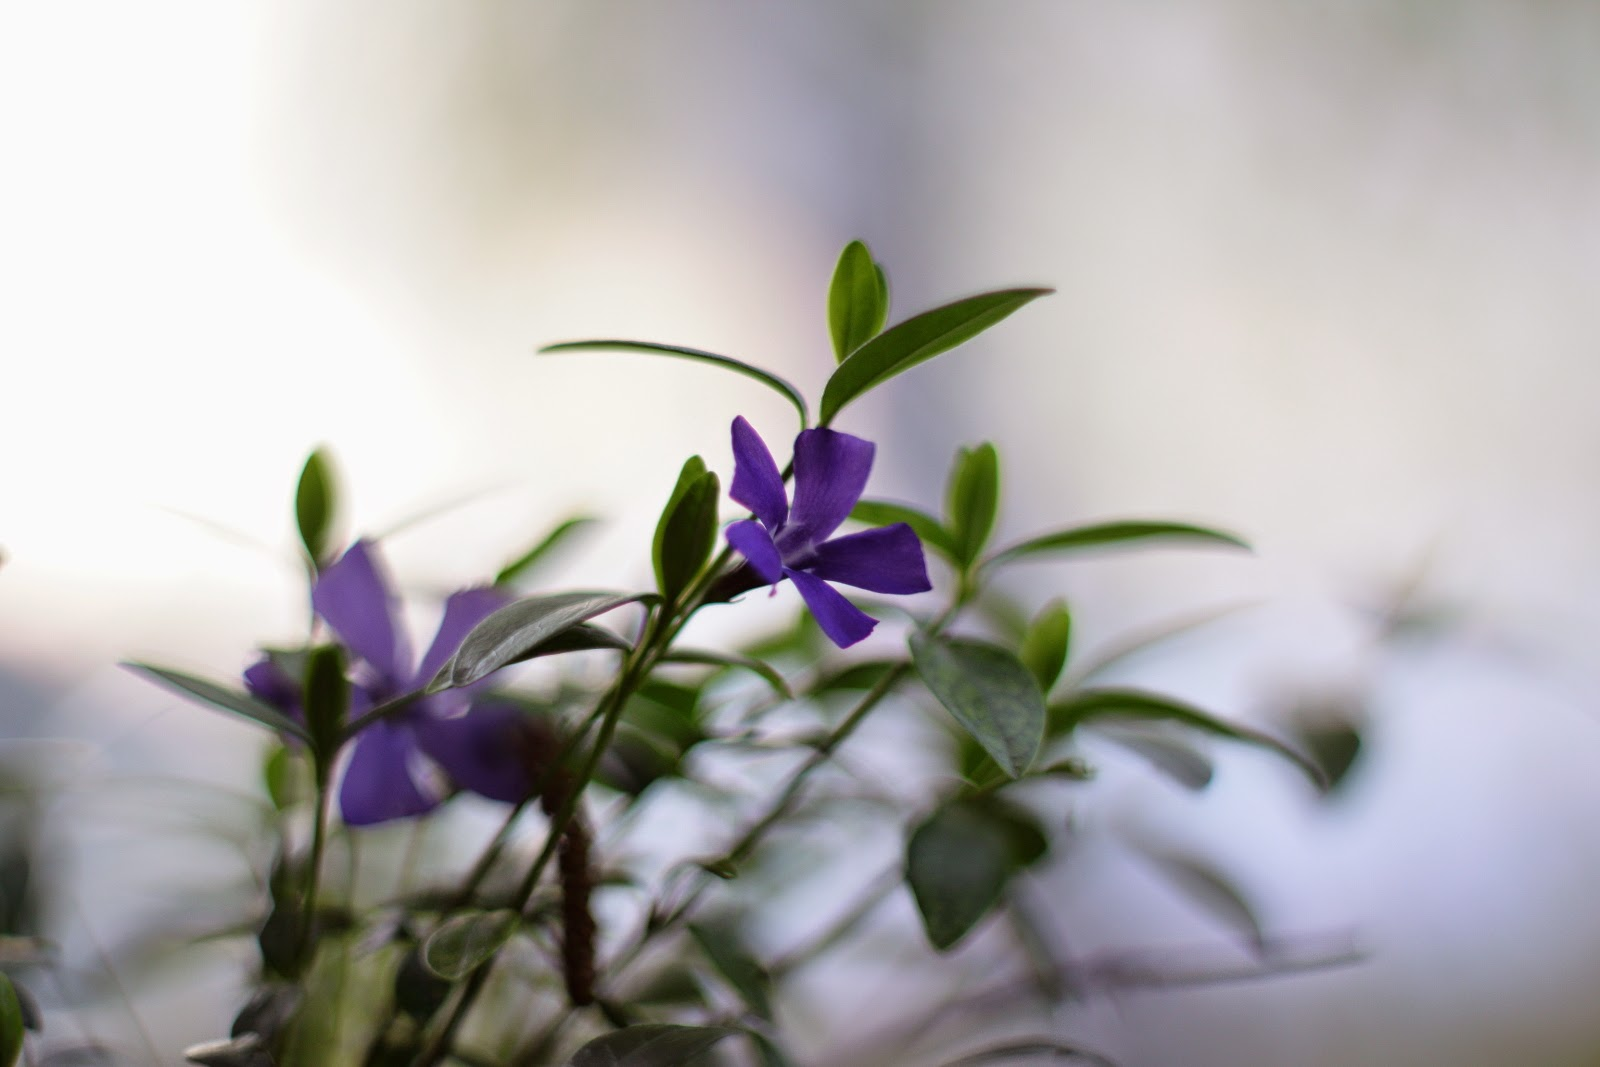 vinca flower, A Day in the Life, Photo-A-Day April 2015, Day 13, by Lisa Miller